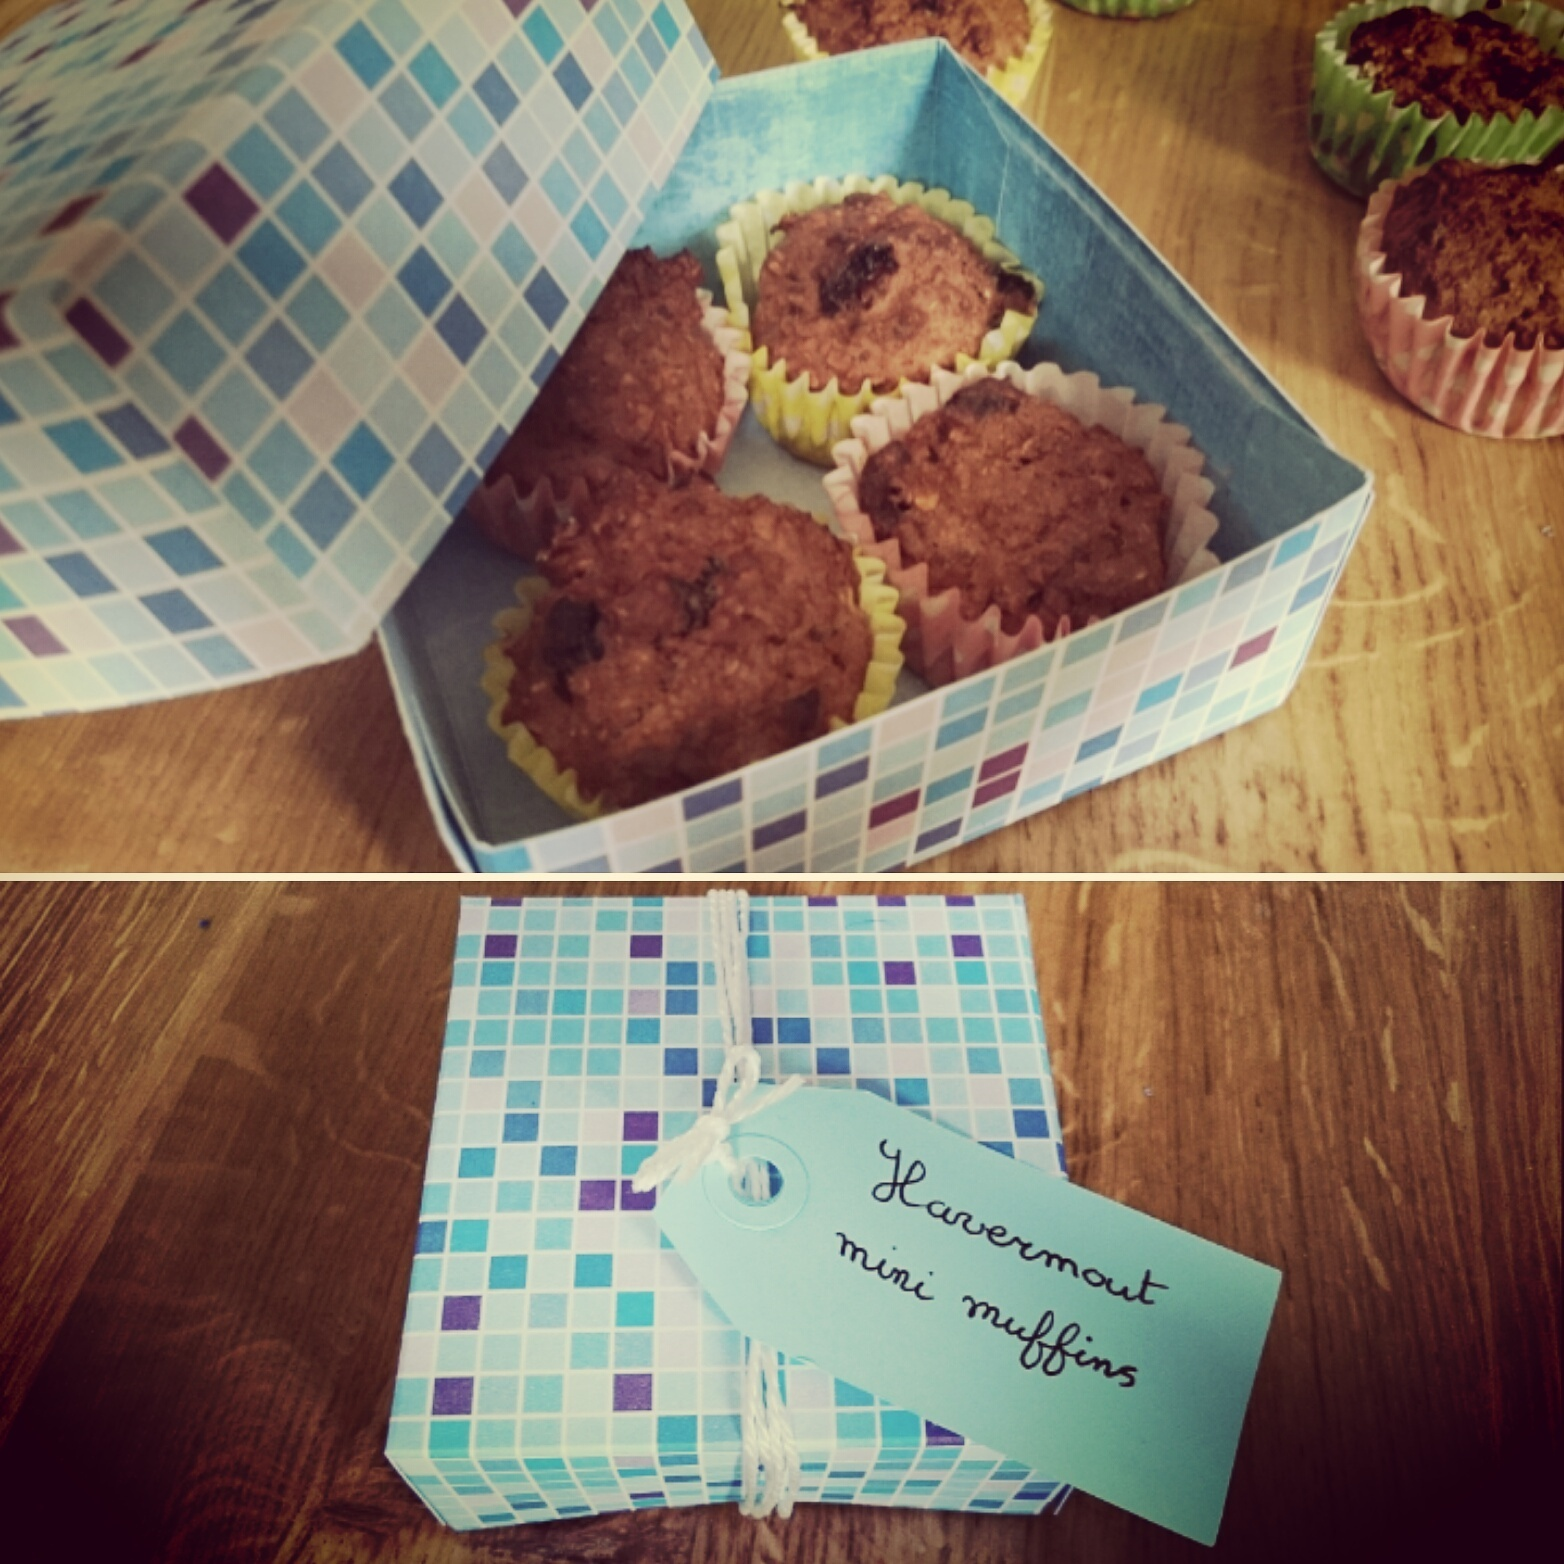 Havermout mini muffins